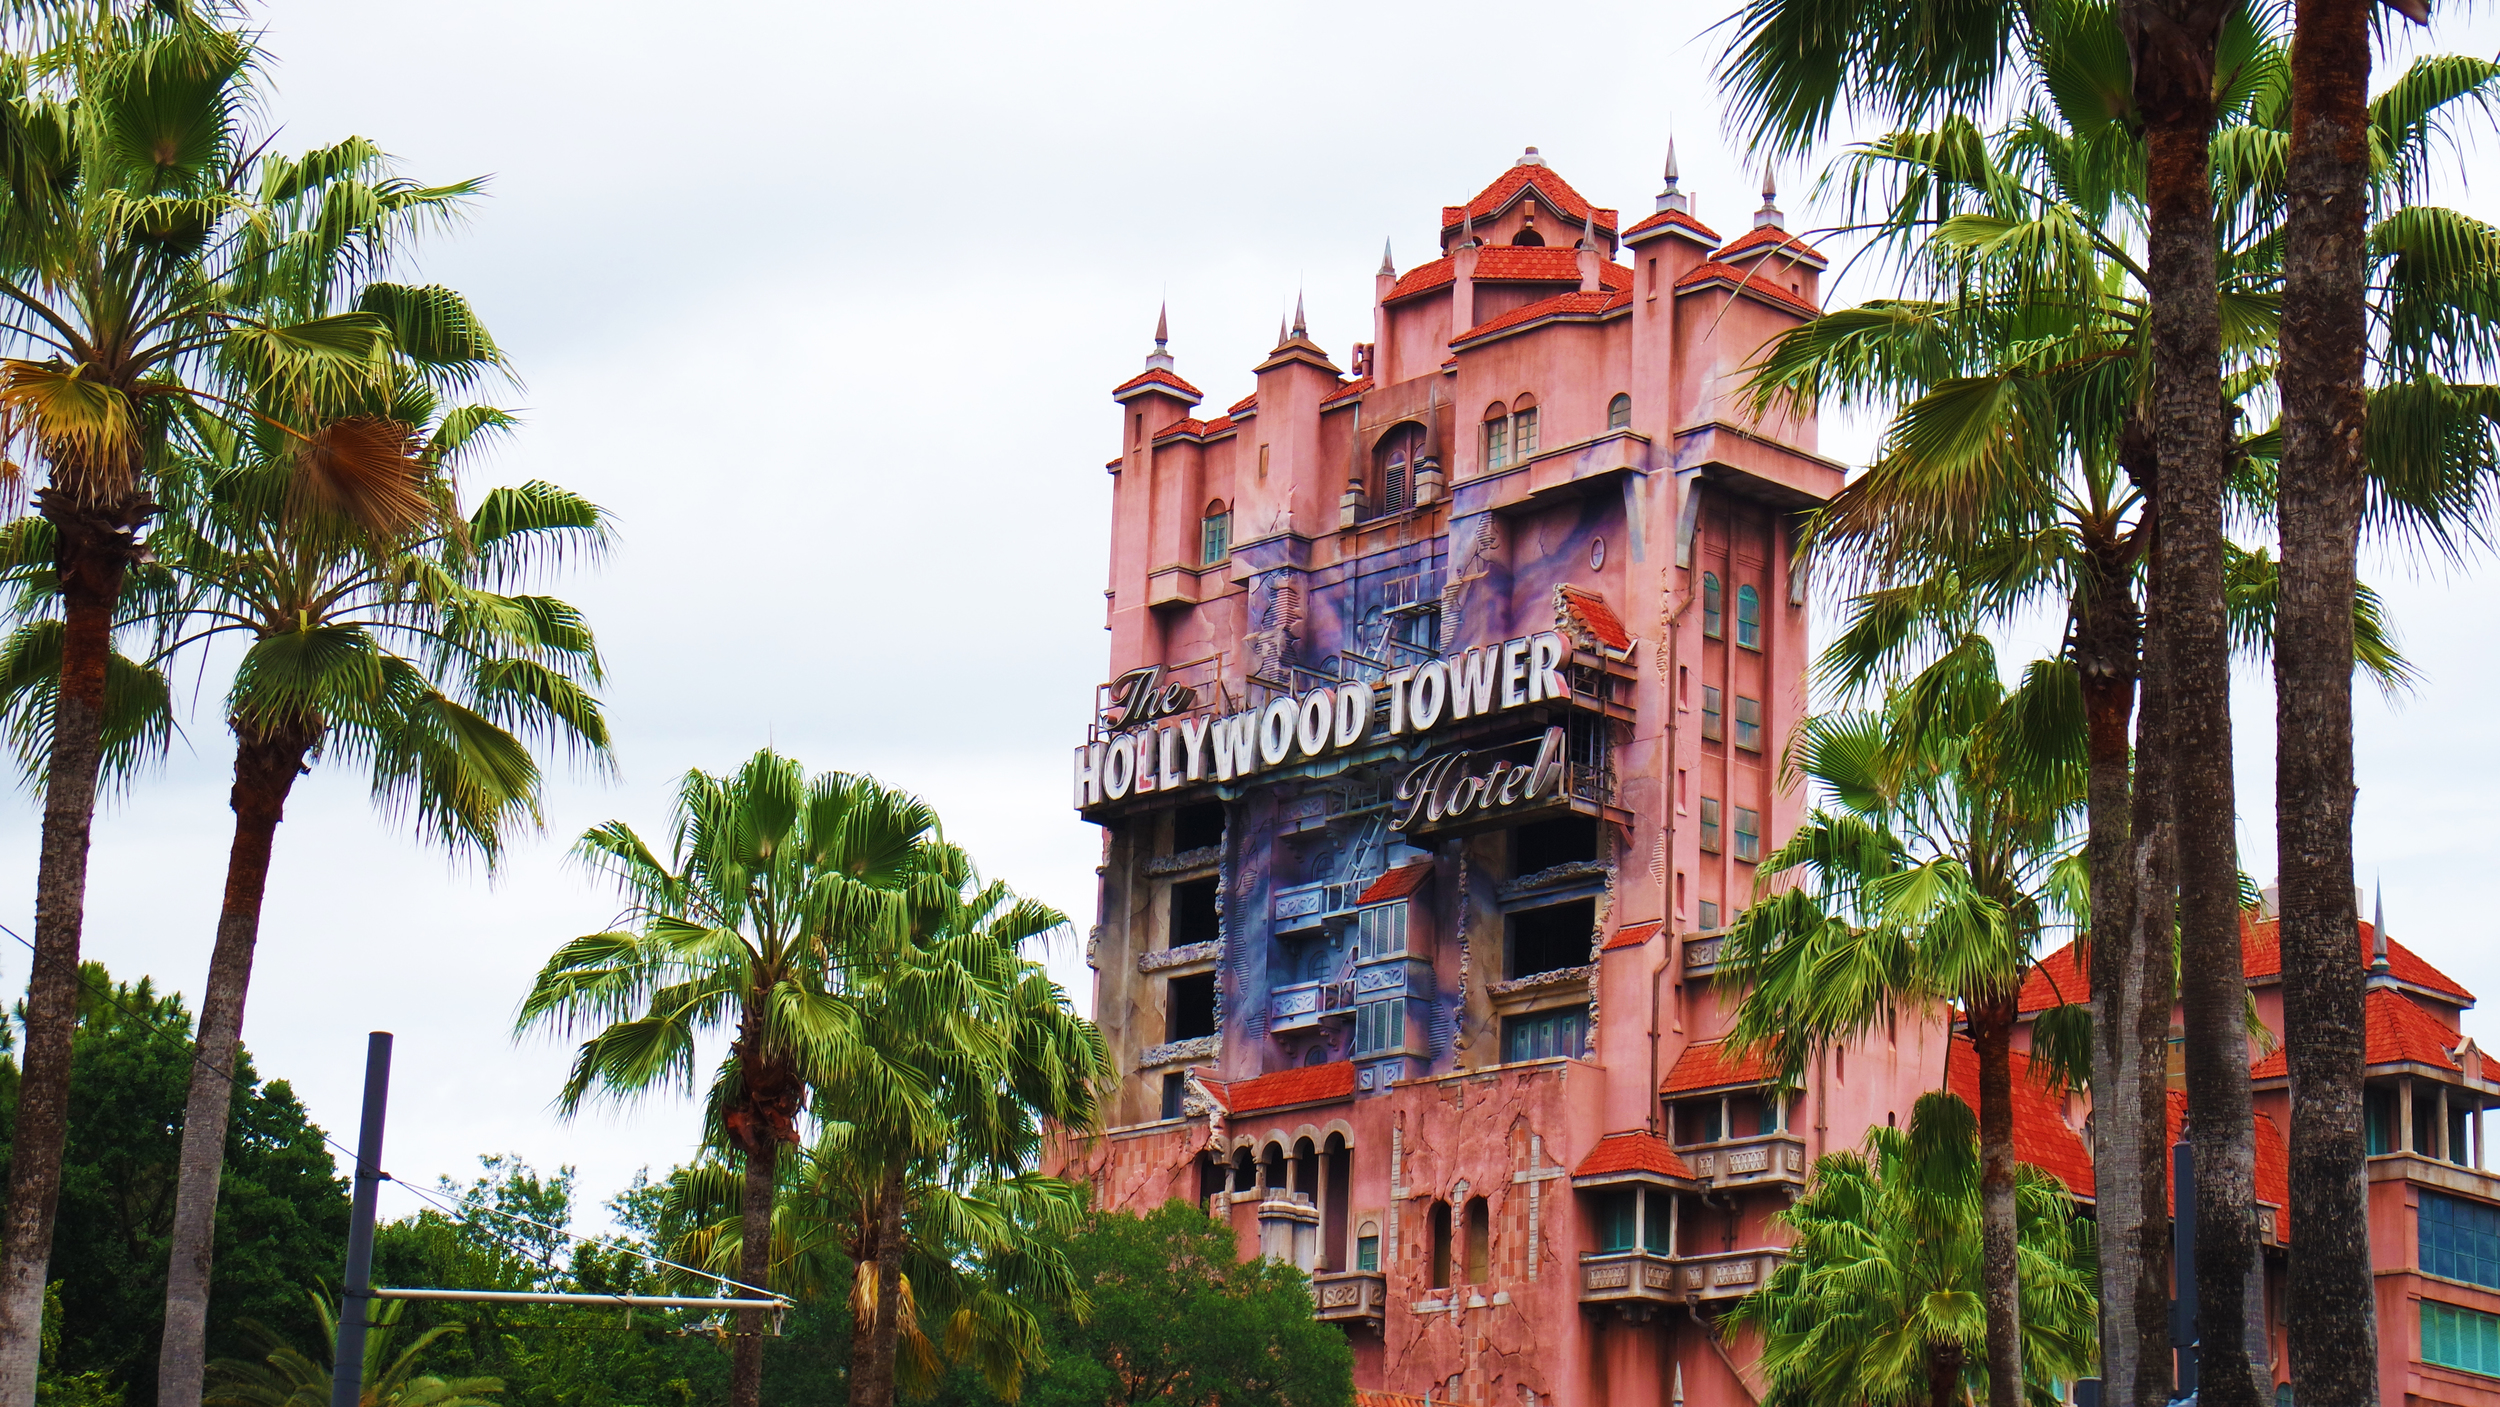 The Hollywood Tower Hotel was a really fun ride!